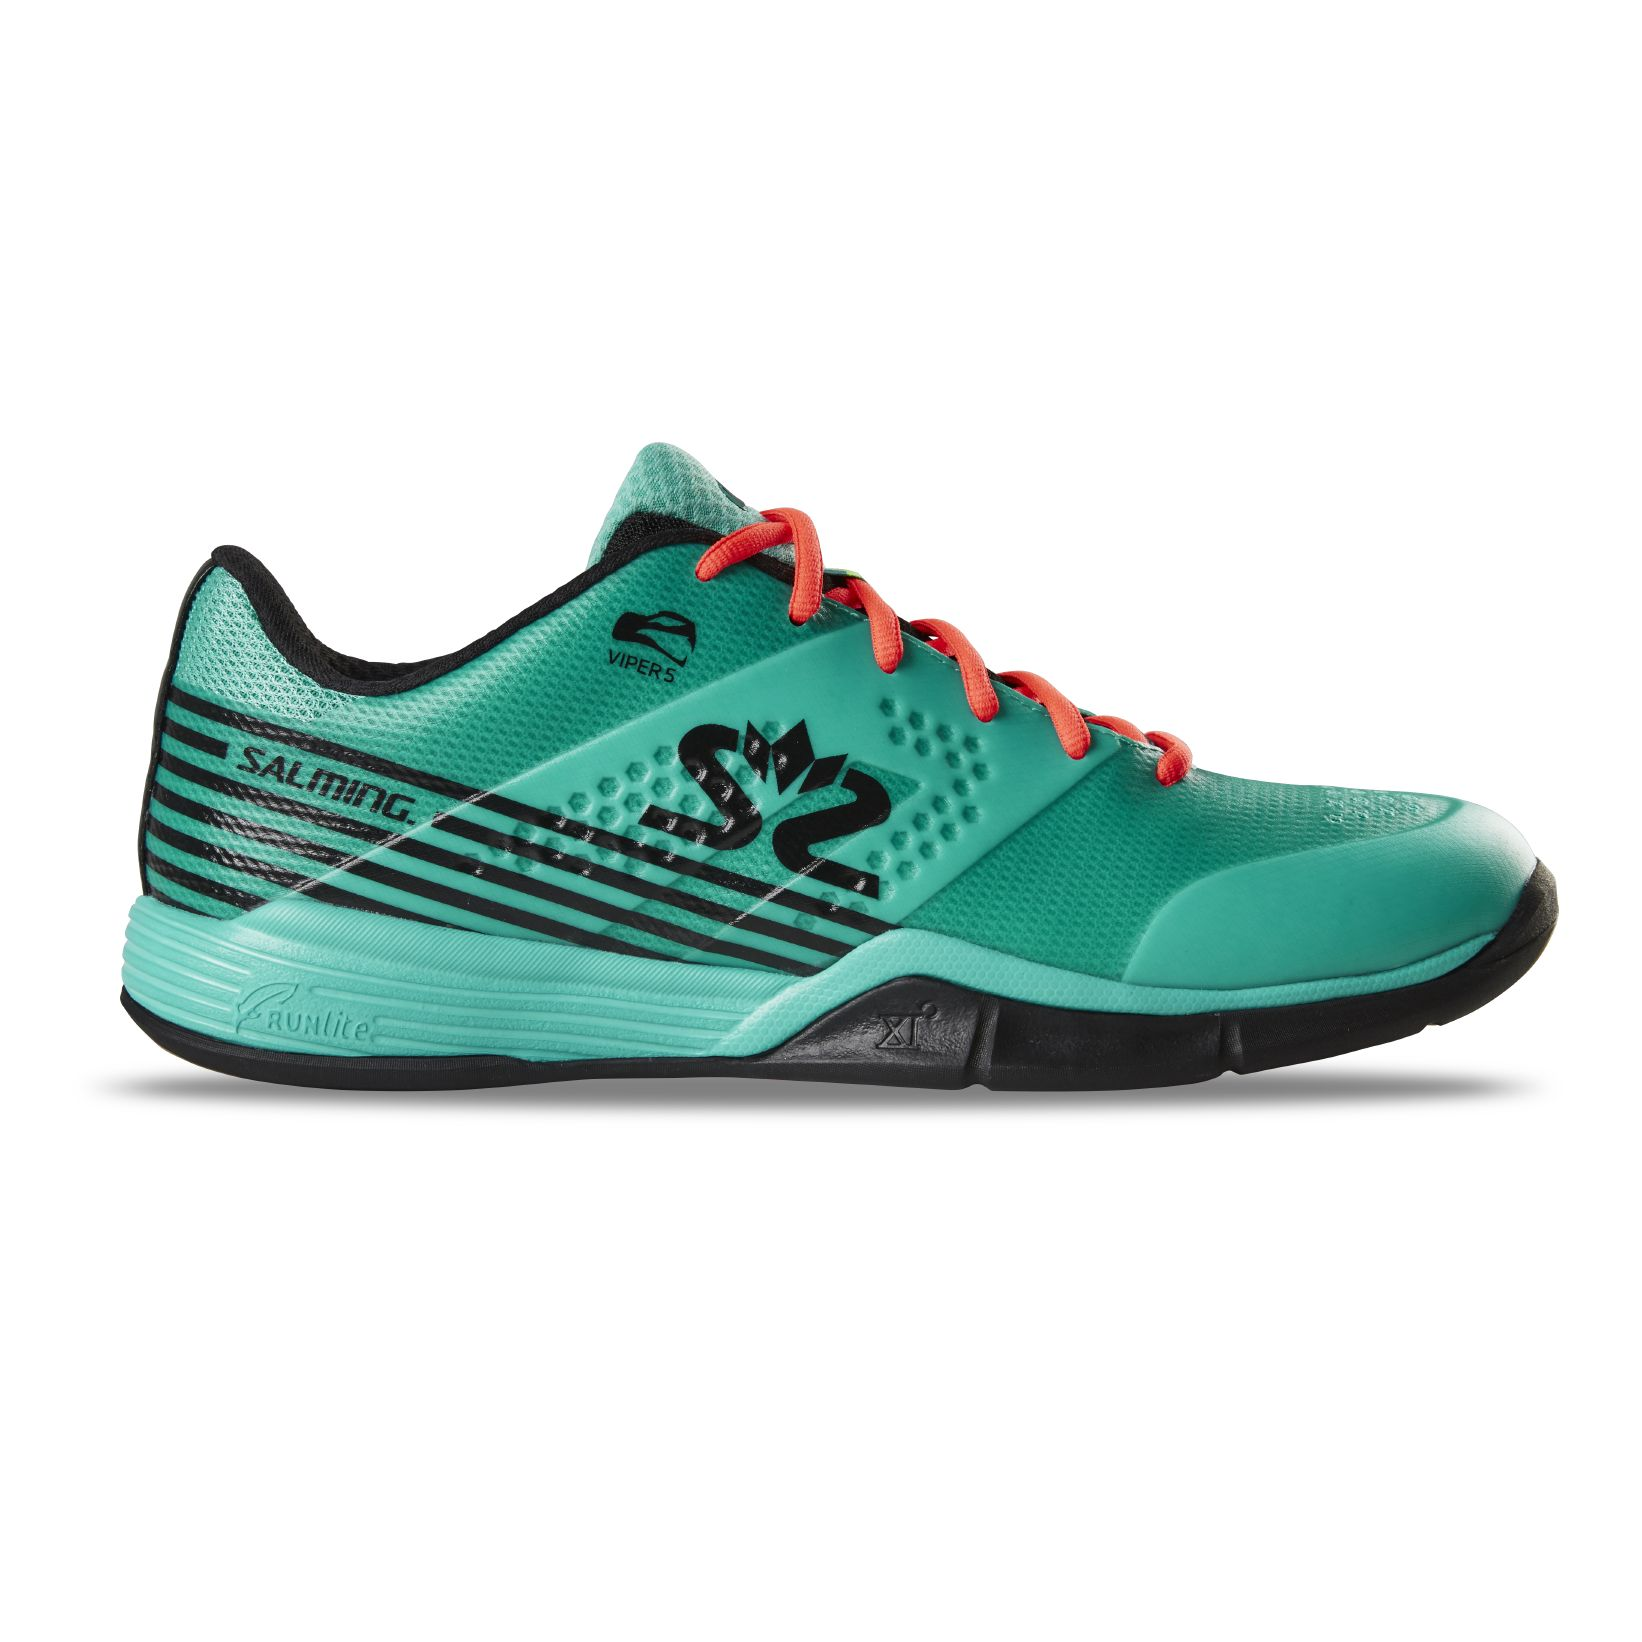 Salming Viper 5 Shoe Men Turquoise/Black 8,5 UK - 43 1/3 EUR - 27,5 cm